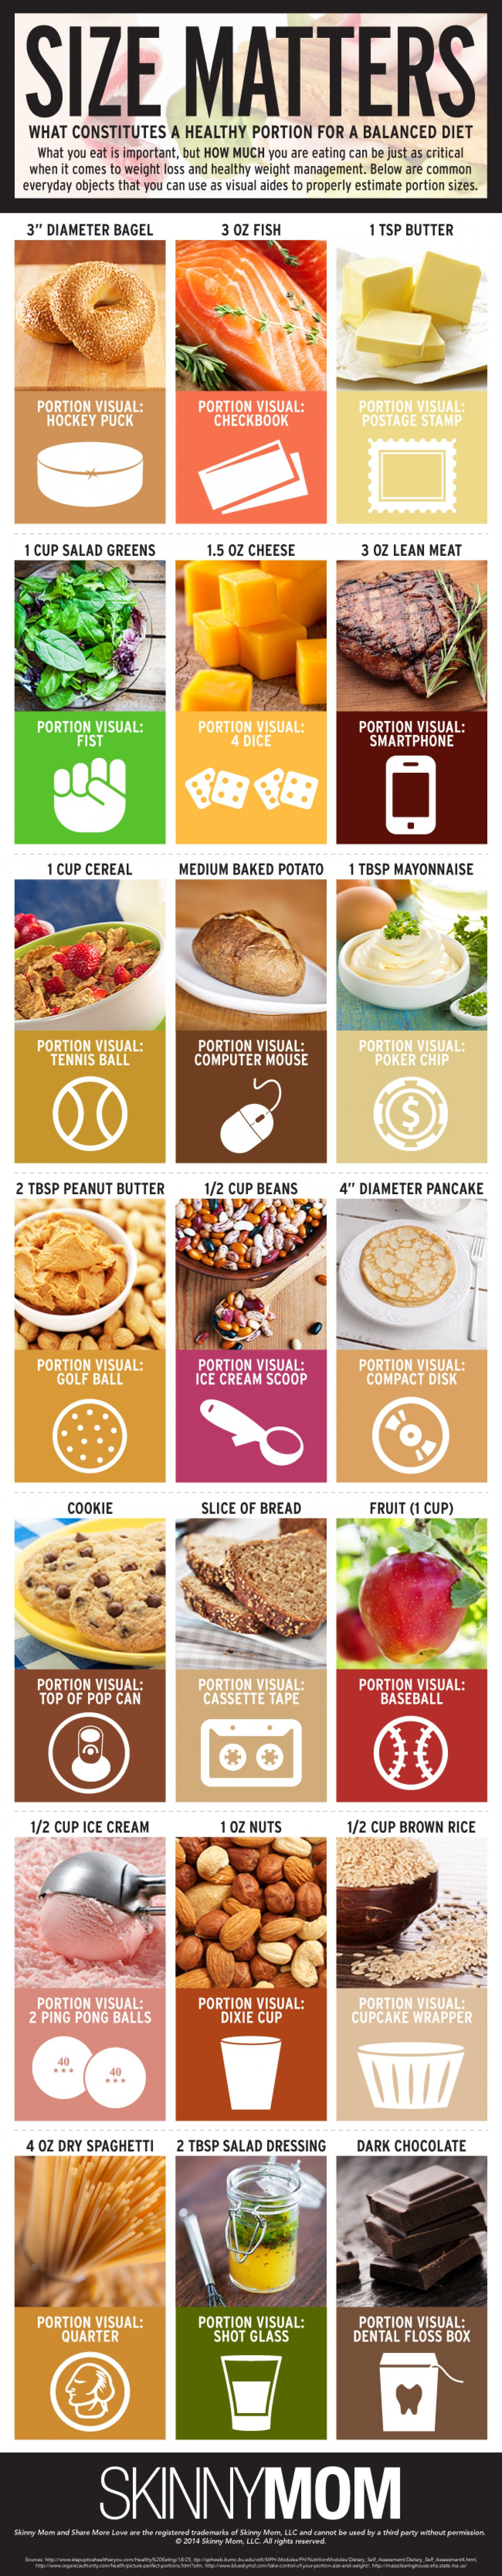 Here are common everyday objects that you can use as visual aides to properly estimate portion sizes. - See more at: http://visual.ly/size-matters-1#sthash.or4QpYsq.dpuf